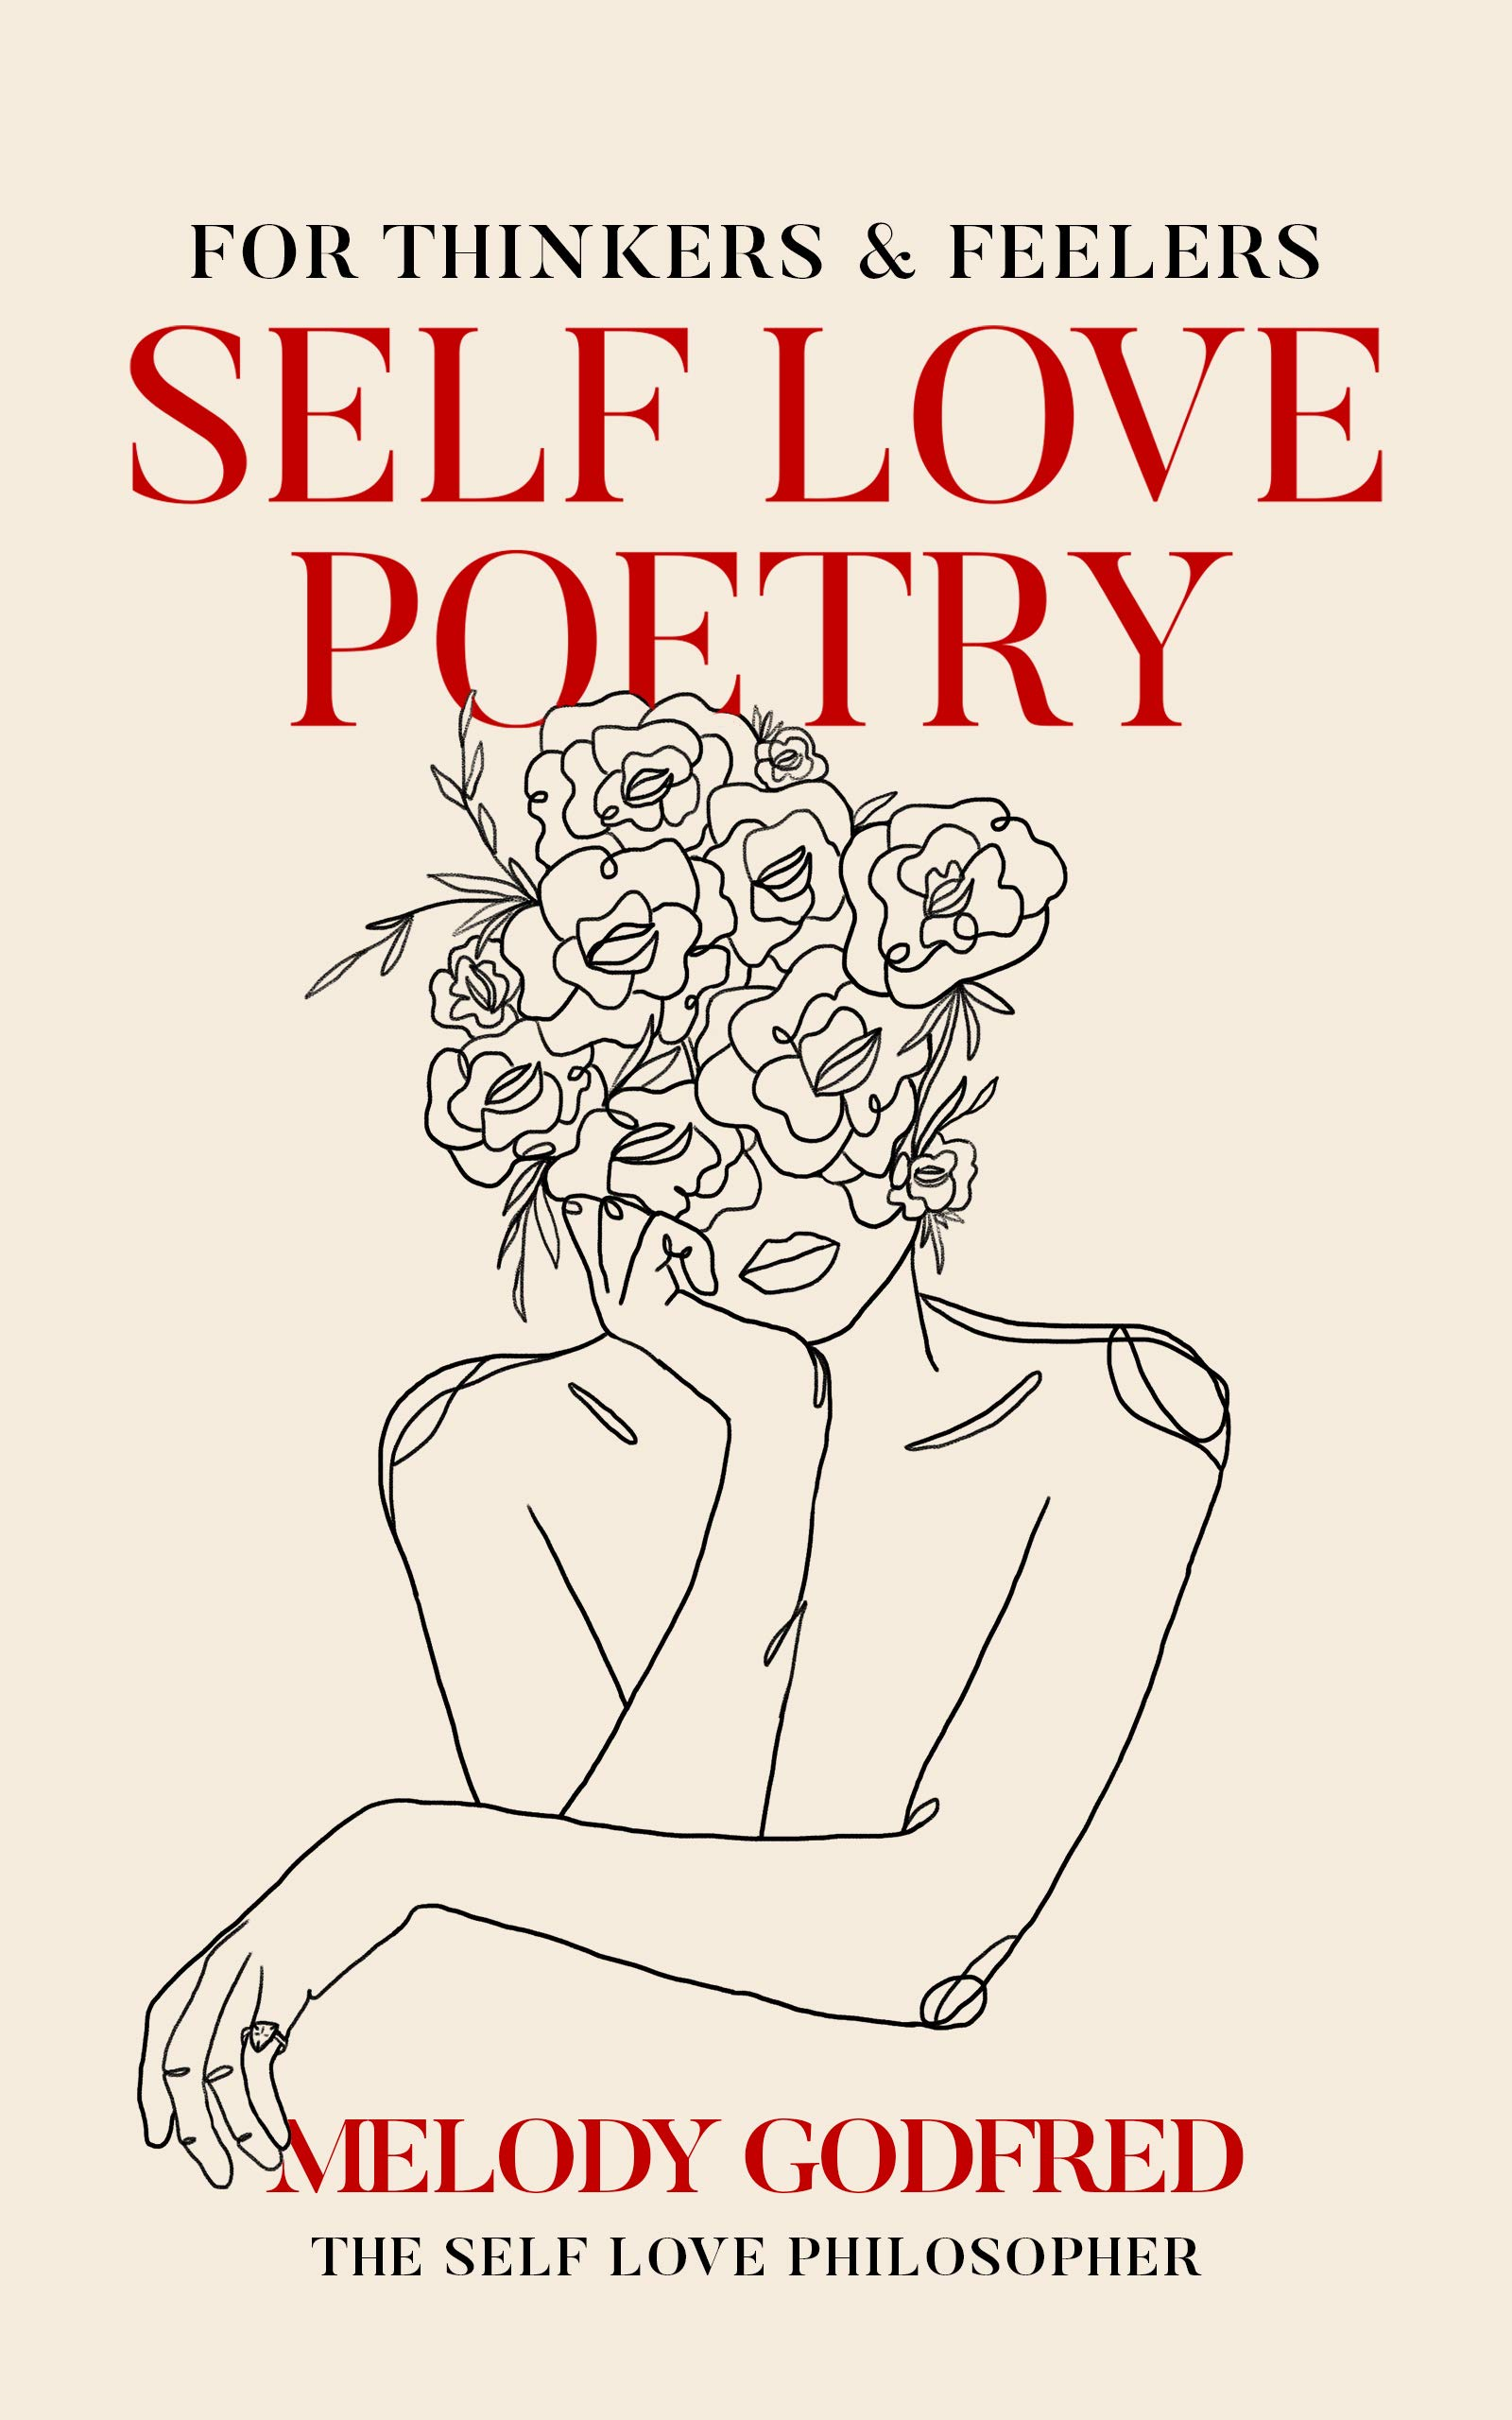 Self Love Poetry: For Thinkers and Feelers